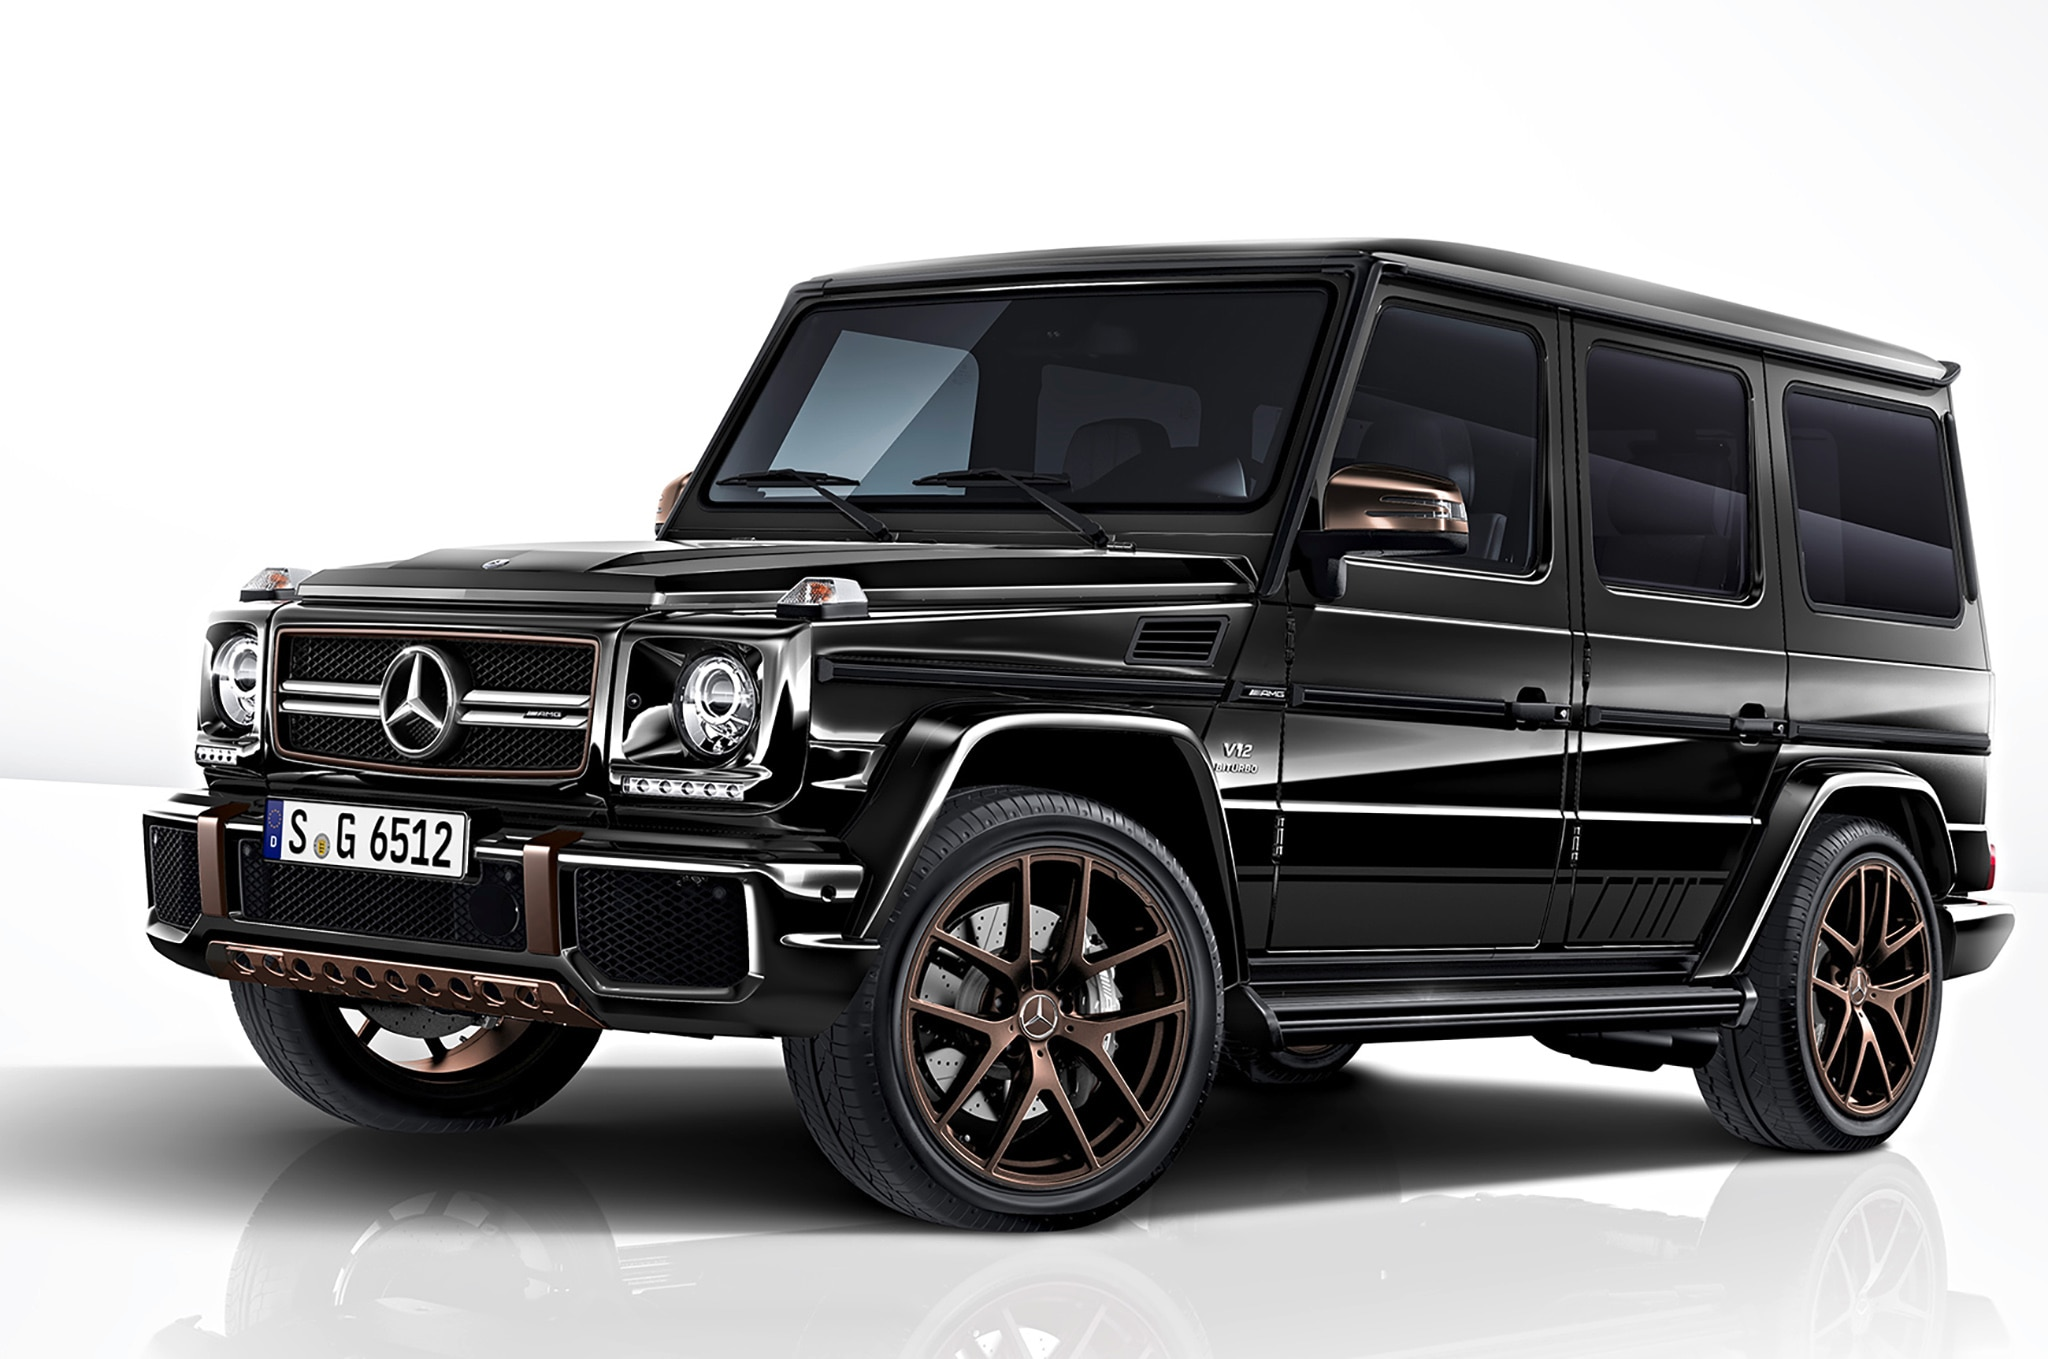 Mercedes Amg G65 Final Edition Of 65 Rolls Out Automobile Magazine Benz G Cl 2018 How The Darling